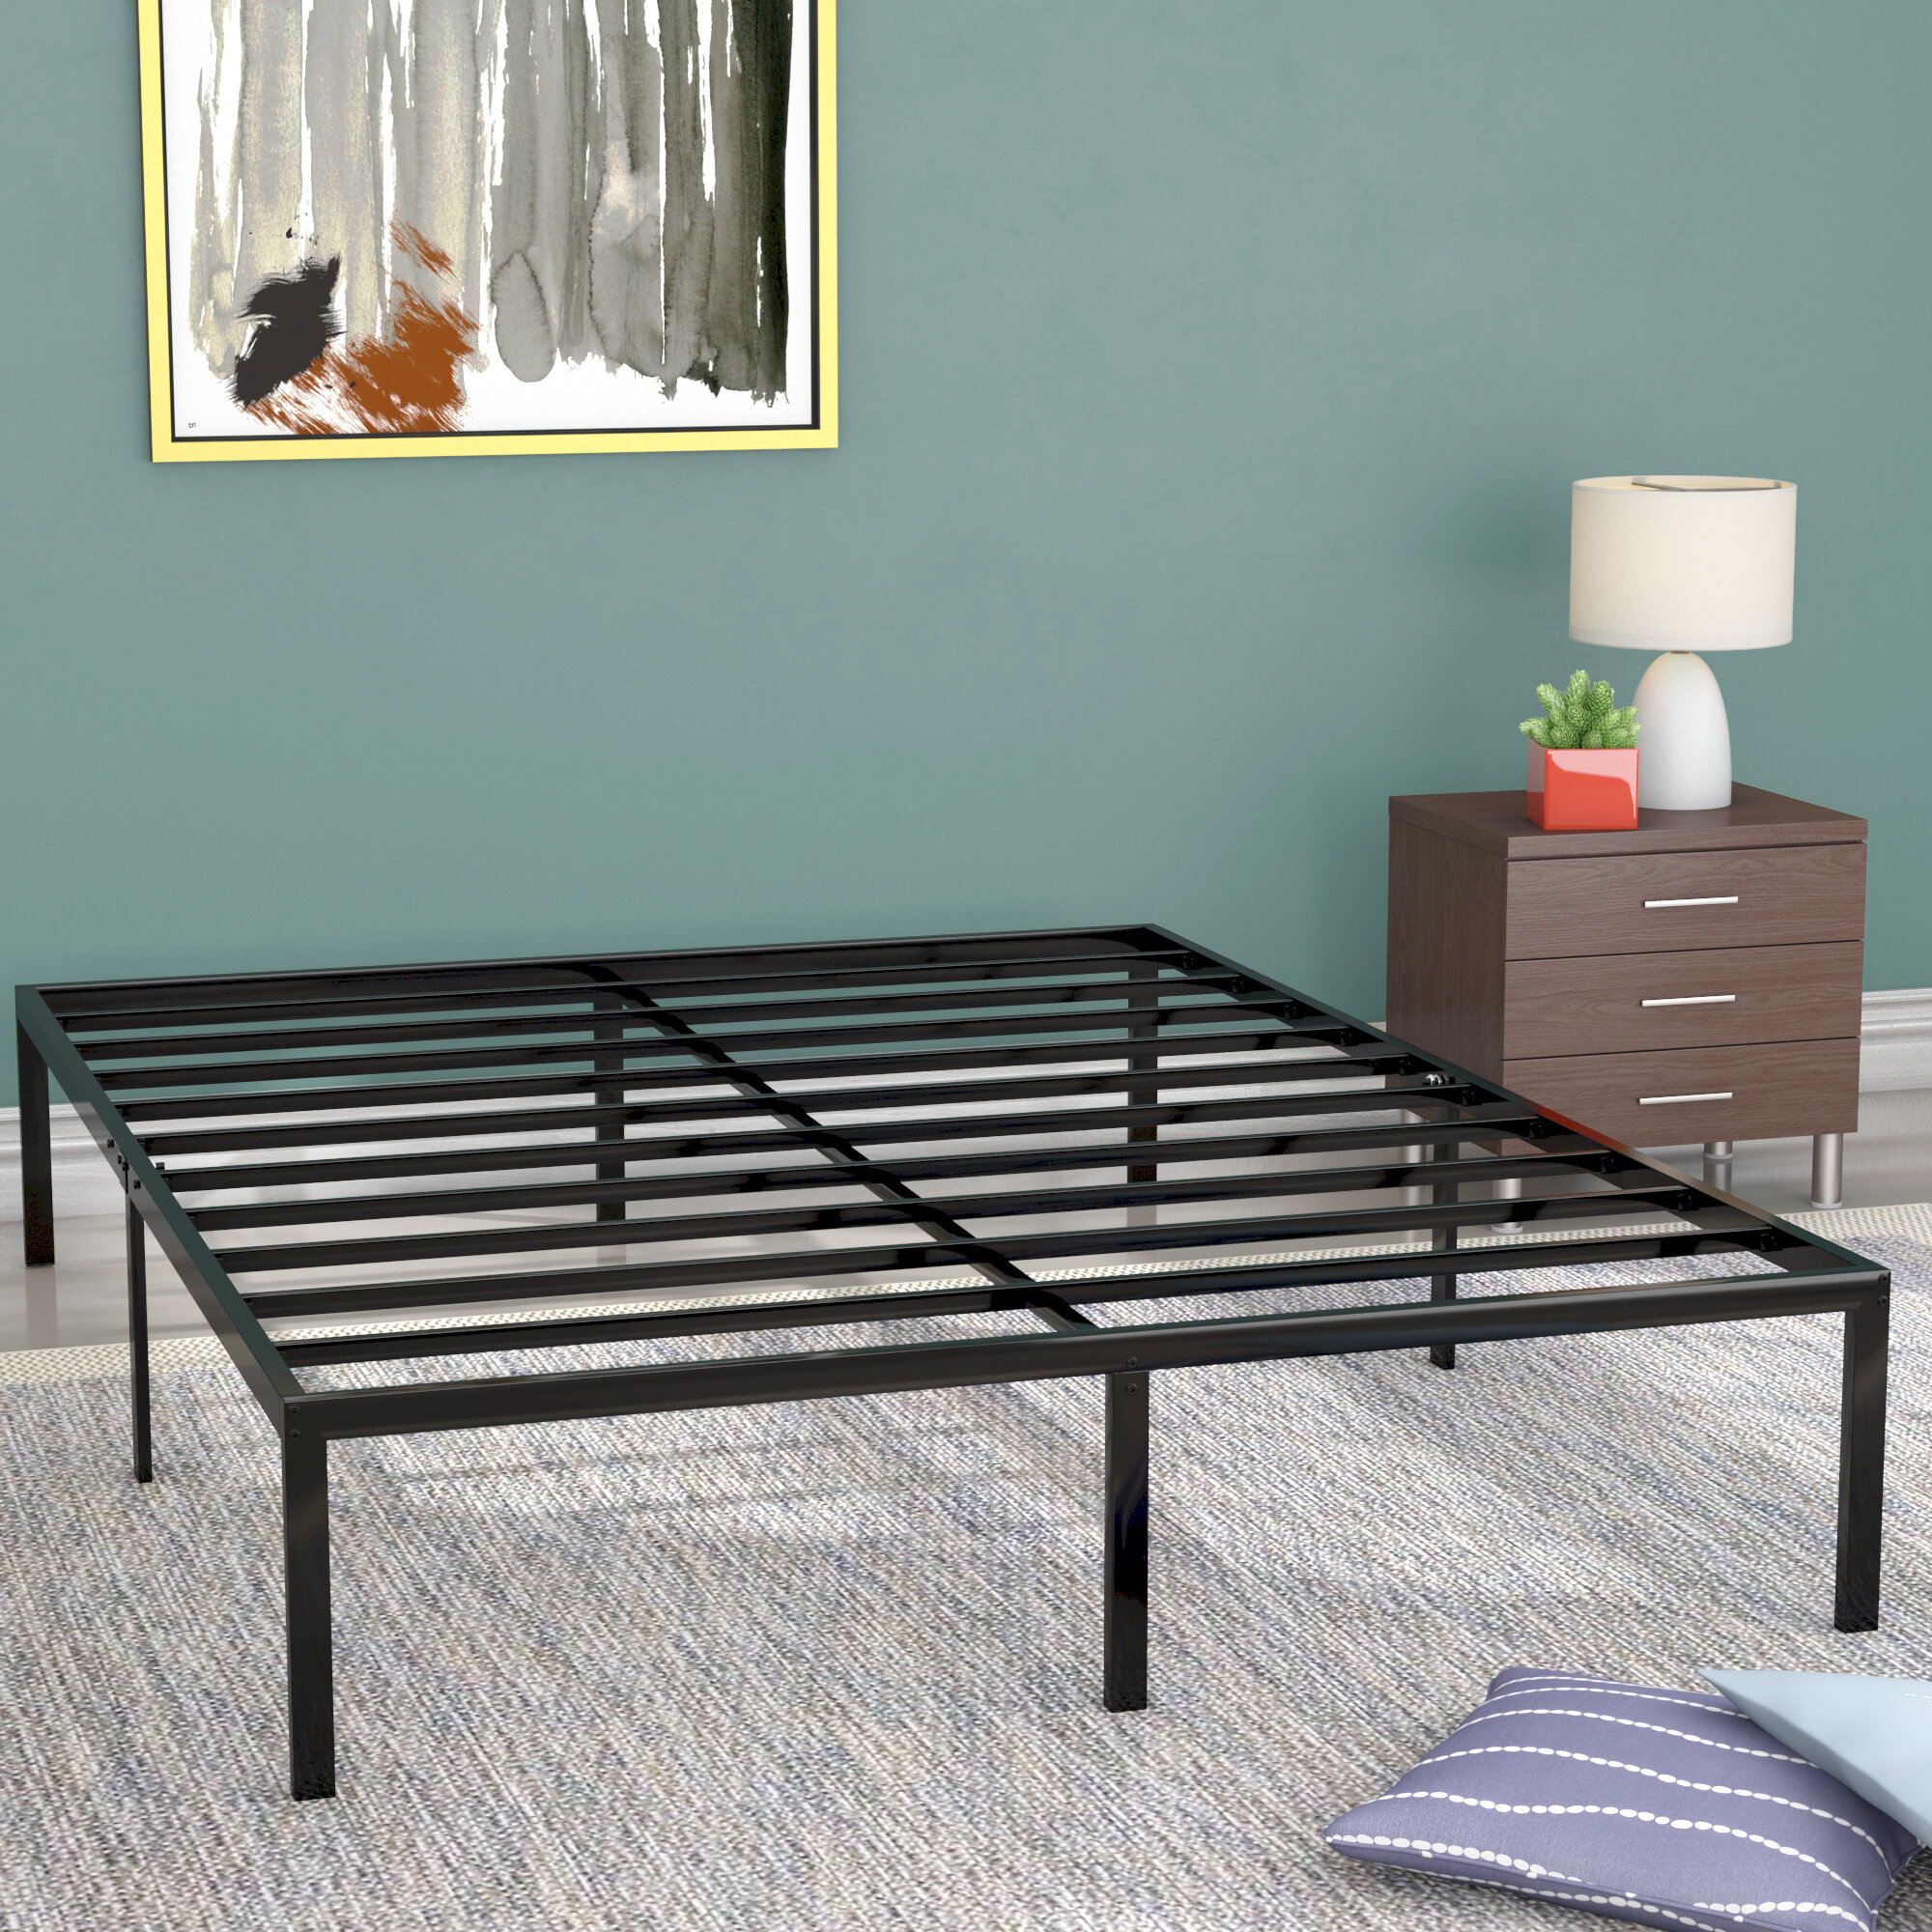 Full KINGSO 14 Inch Metal Platform Bed Frame//Heavy Duty Steel Slat//Anti-Slip Support//Easy Assembly//Mattress Foundation//Under Bed Storage//Noise Free//No Box Spring Needed